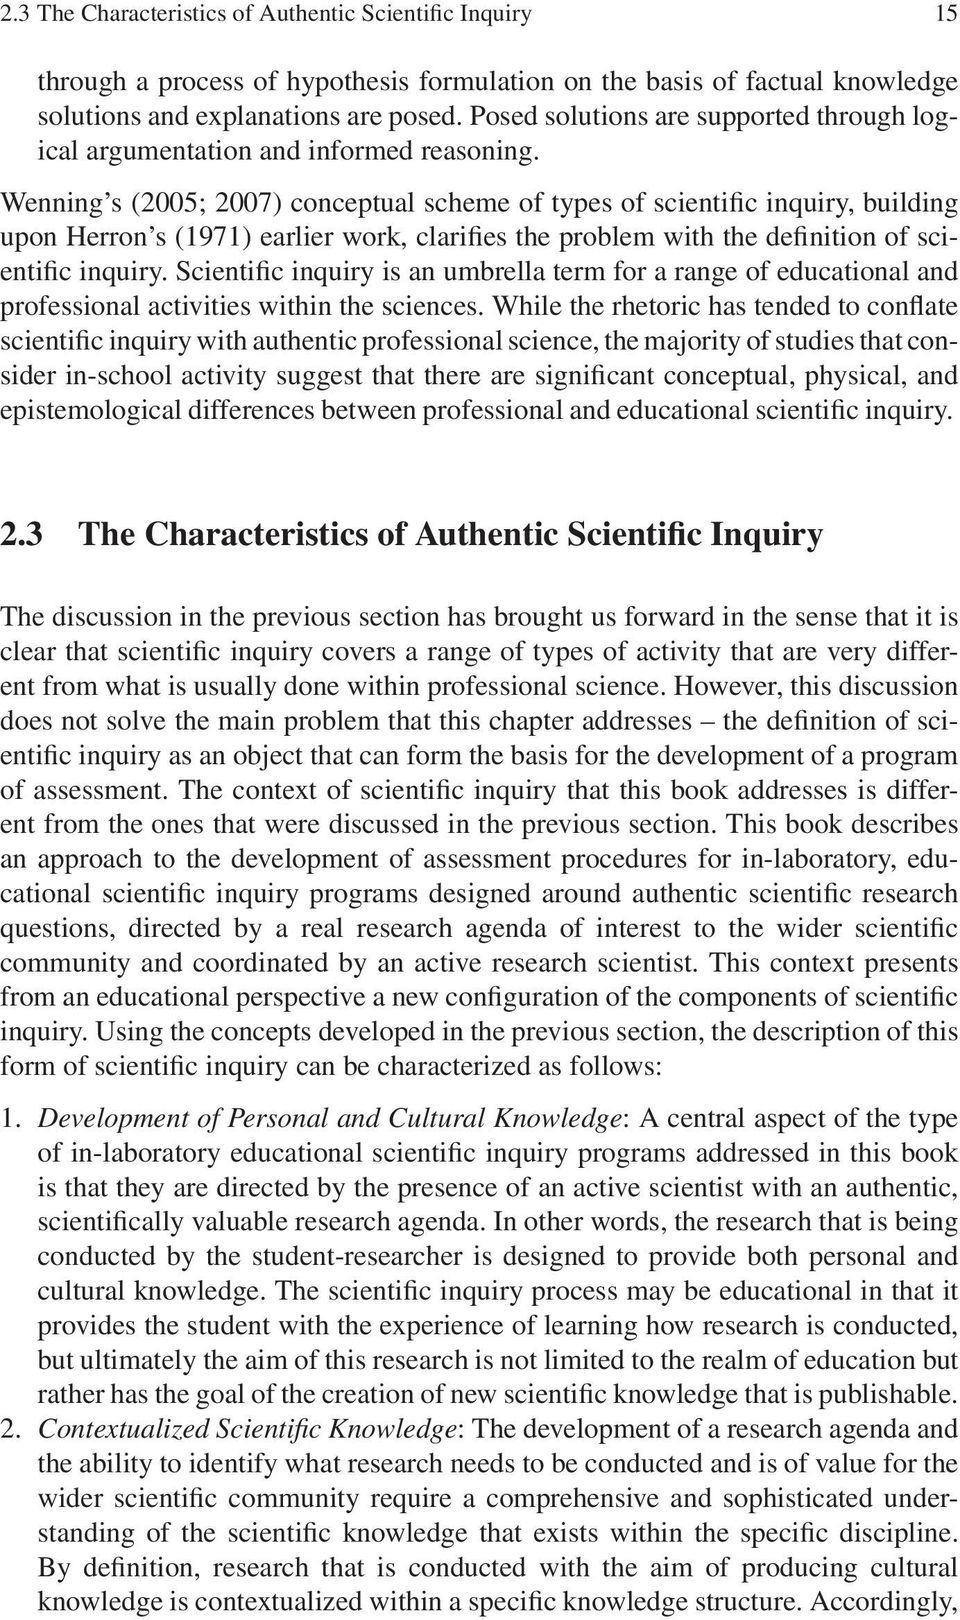 Wenning s (2005; 2007) conceptual scheme of types of scientific inquiry, building upon Herron s (1971) earlier work, clarifies the problem with the definition of scientific inquiry.